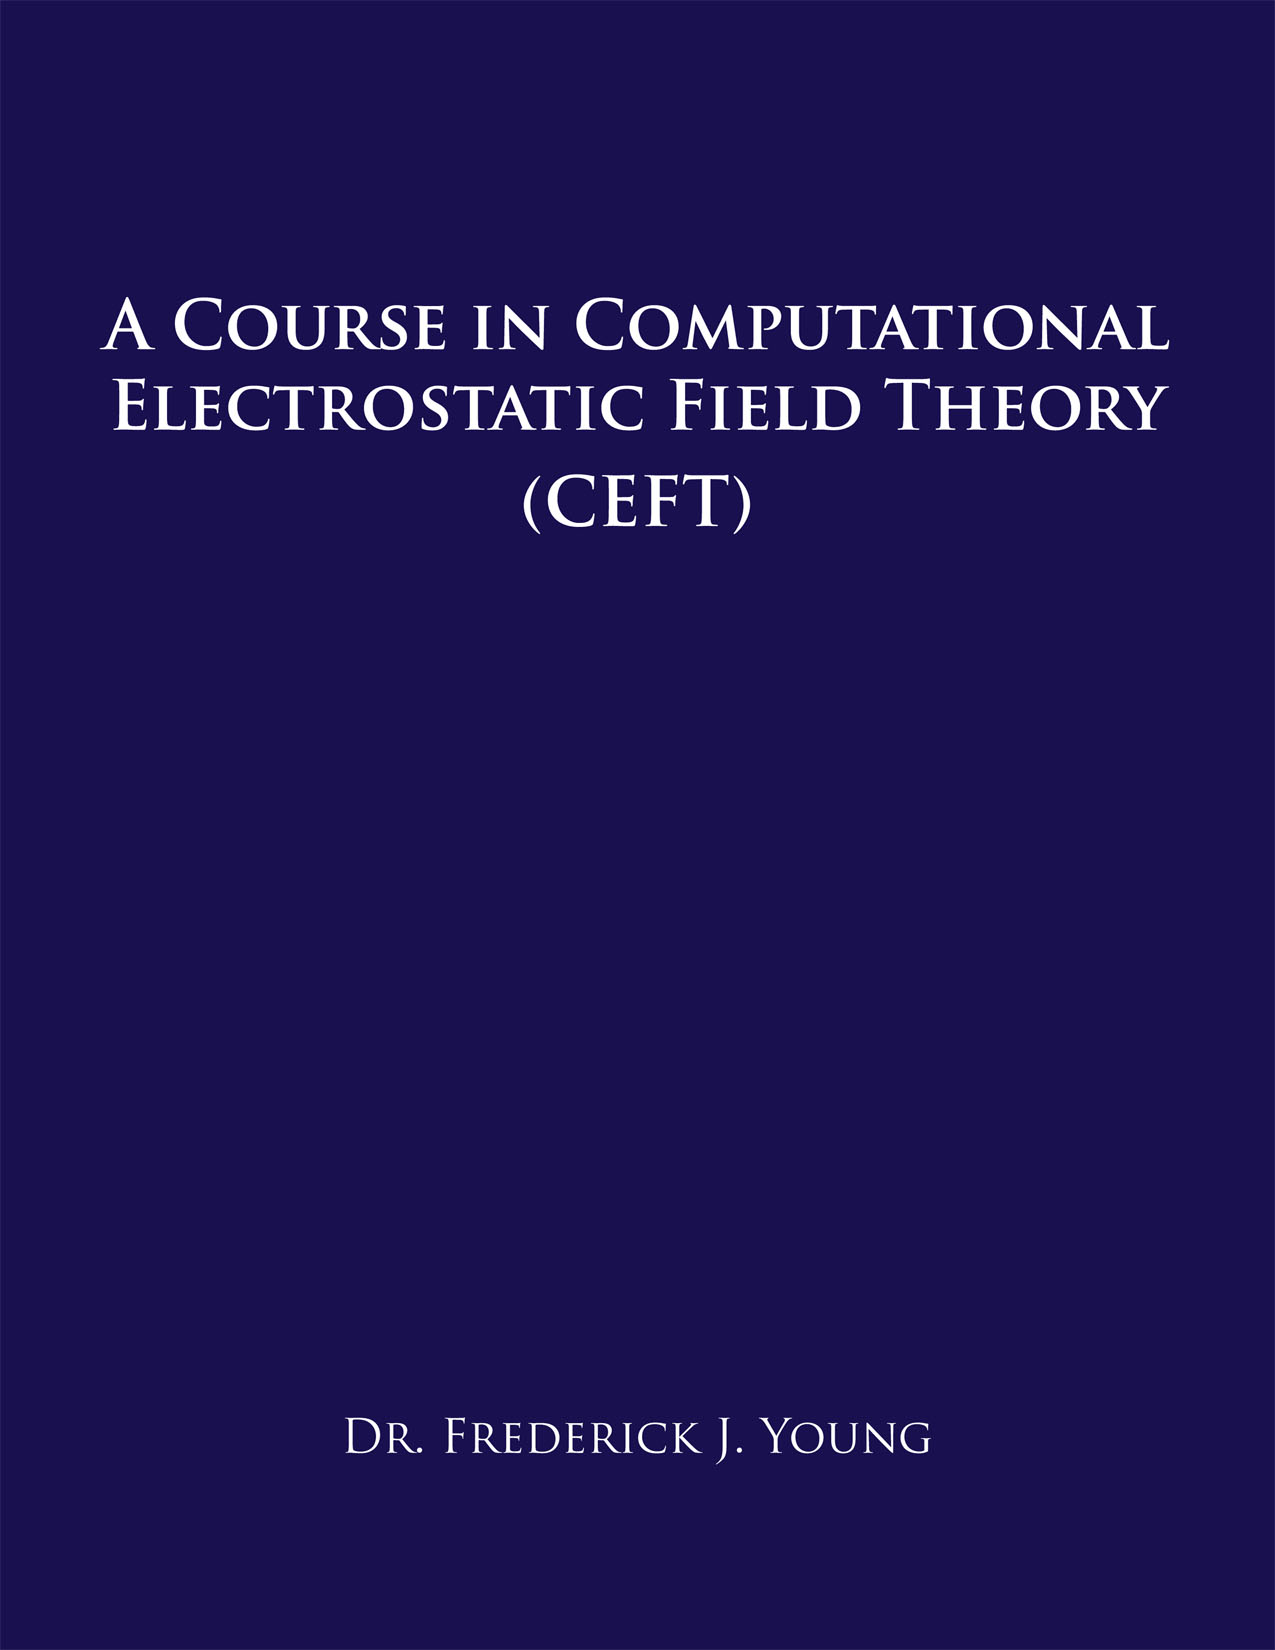 A COURSE IN COMPUTATIONAL ELECTROSTATIC FIELD THEORY